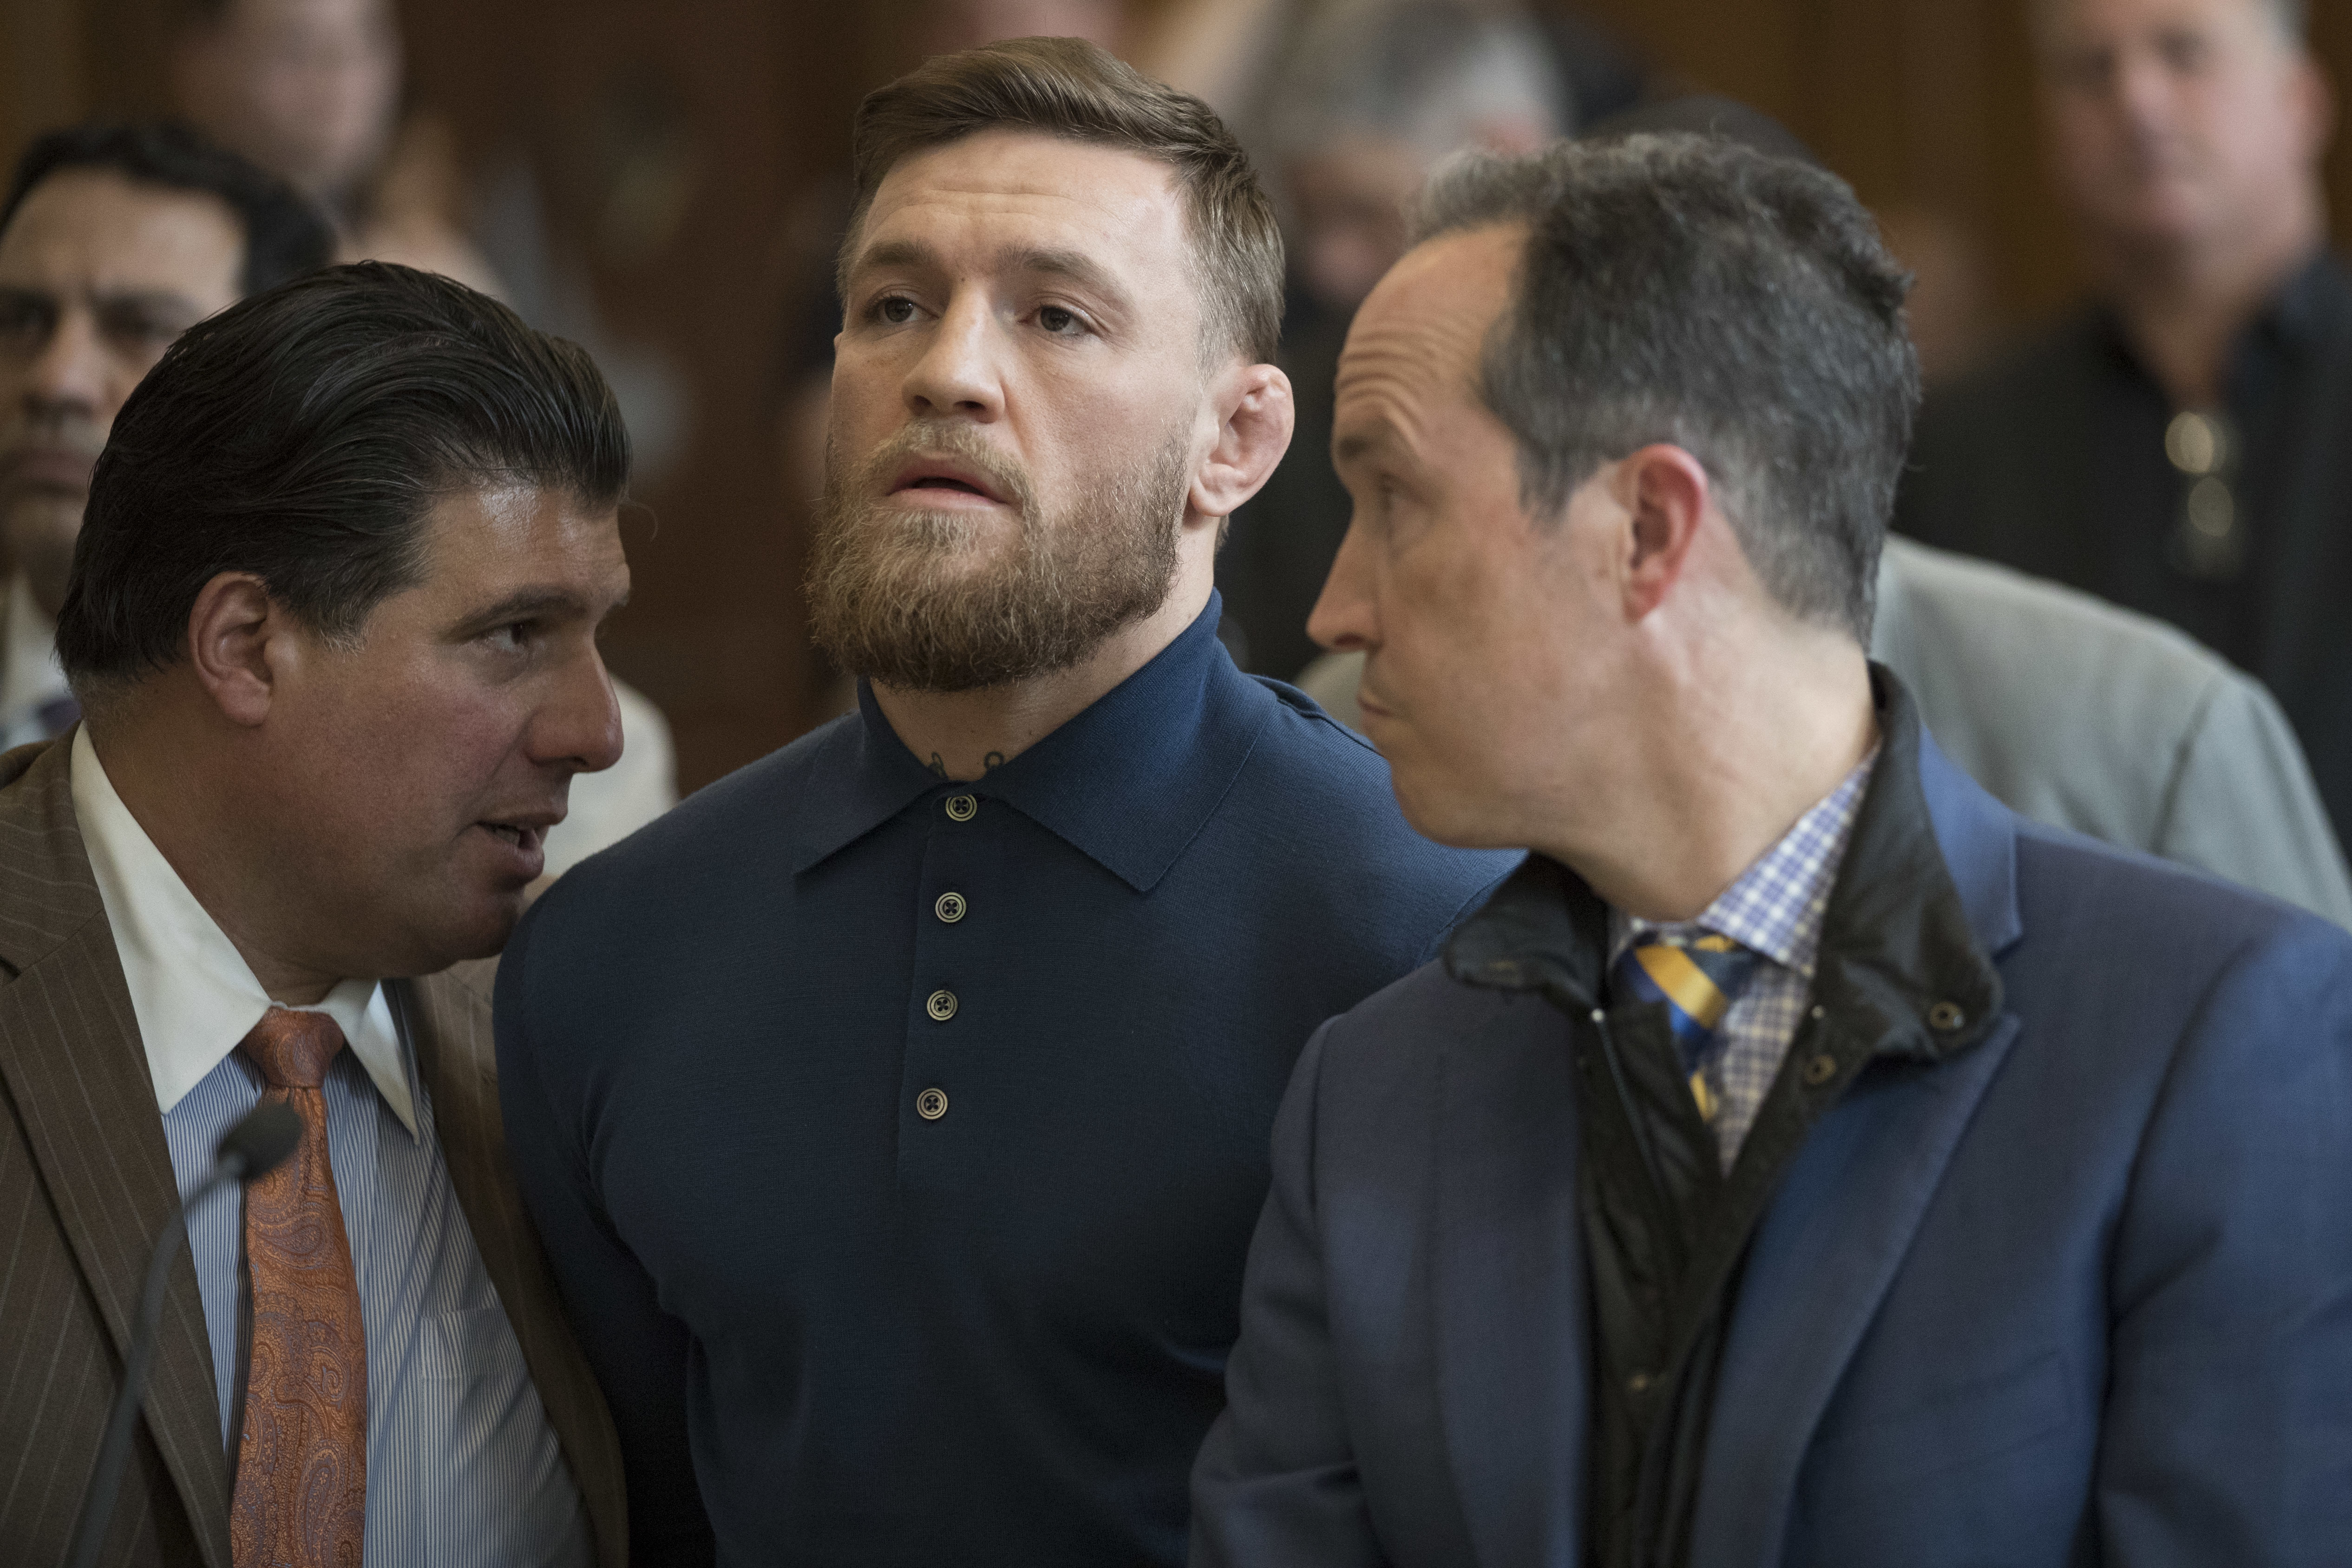 Ultimate fighting star Conor McGregor stands with his lawyer Jim Walden during an arraignment in Brooklyn Criminal court on April 6, 2018 in New York City. McGregor is facing criminal charges in the wake of a backstage melee he allegedly instigated that has forced the removal of three fighters from UFC's biggest card of the year. Video footage appears to show the promotion's most bankable star throwing a hand truck at a bus full of fighters after a Thursday news conference for UFC 223 at Brooklyn's Barclays Center.